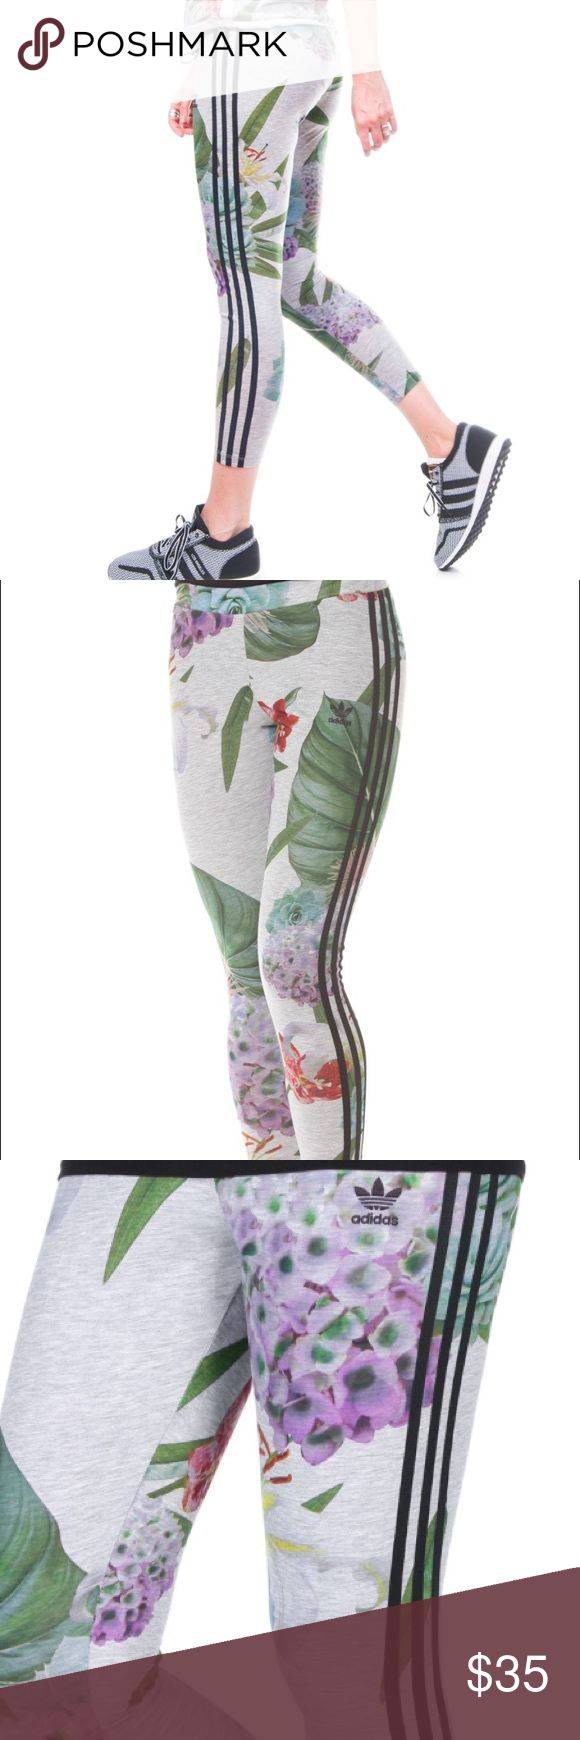 Adidas Train C Leggings Floral Multi - XS New with tag. In perfect condition. 👌🏼 The adidas women's leggings have a lush print made of oversize flowers for a fresh twist. A regular fit and 3-Stripes down the legs give them a casual, sporty look. Please ask any questions you may have before bidding. Adidas Pants Track Pants & Joggers